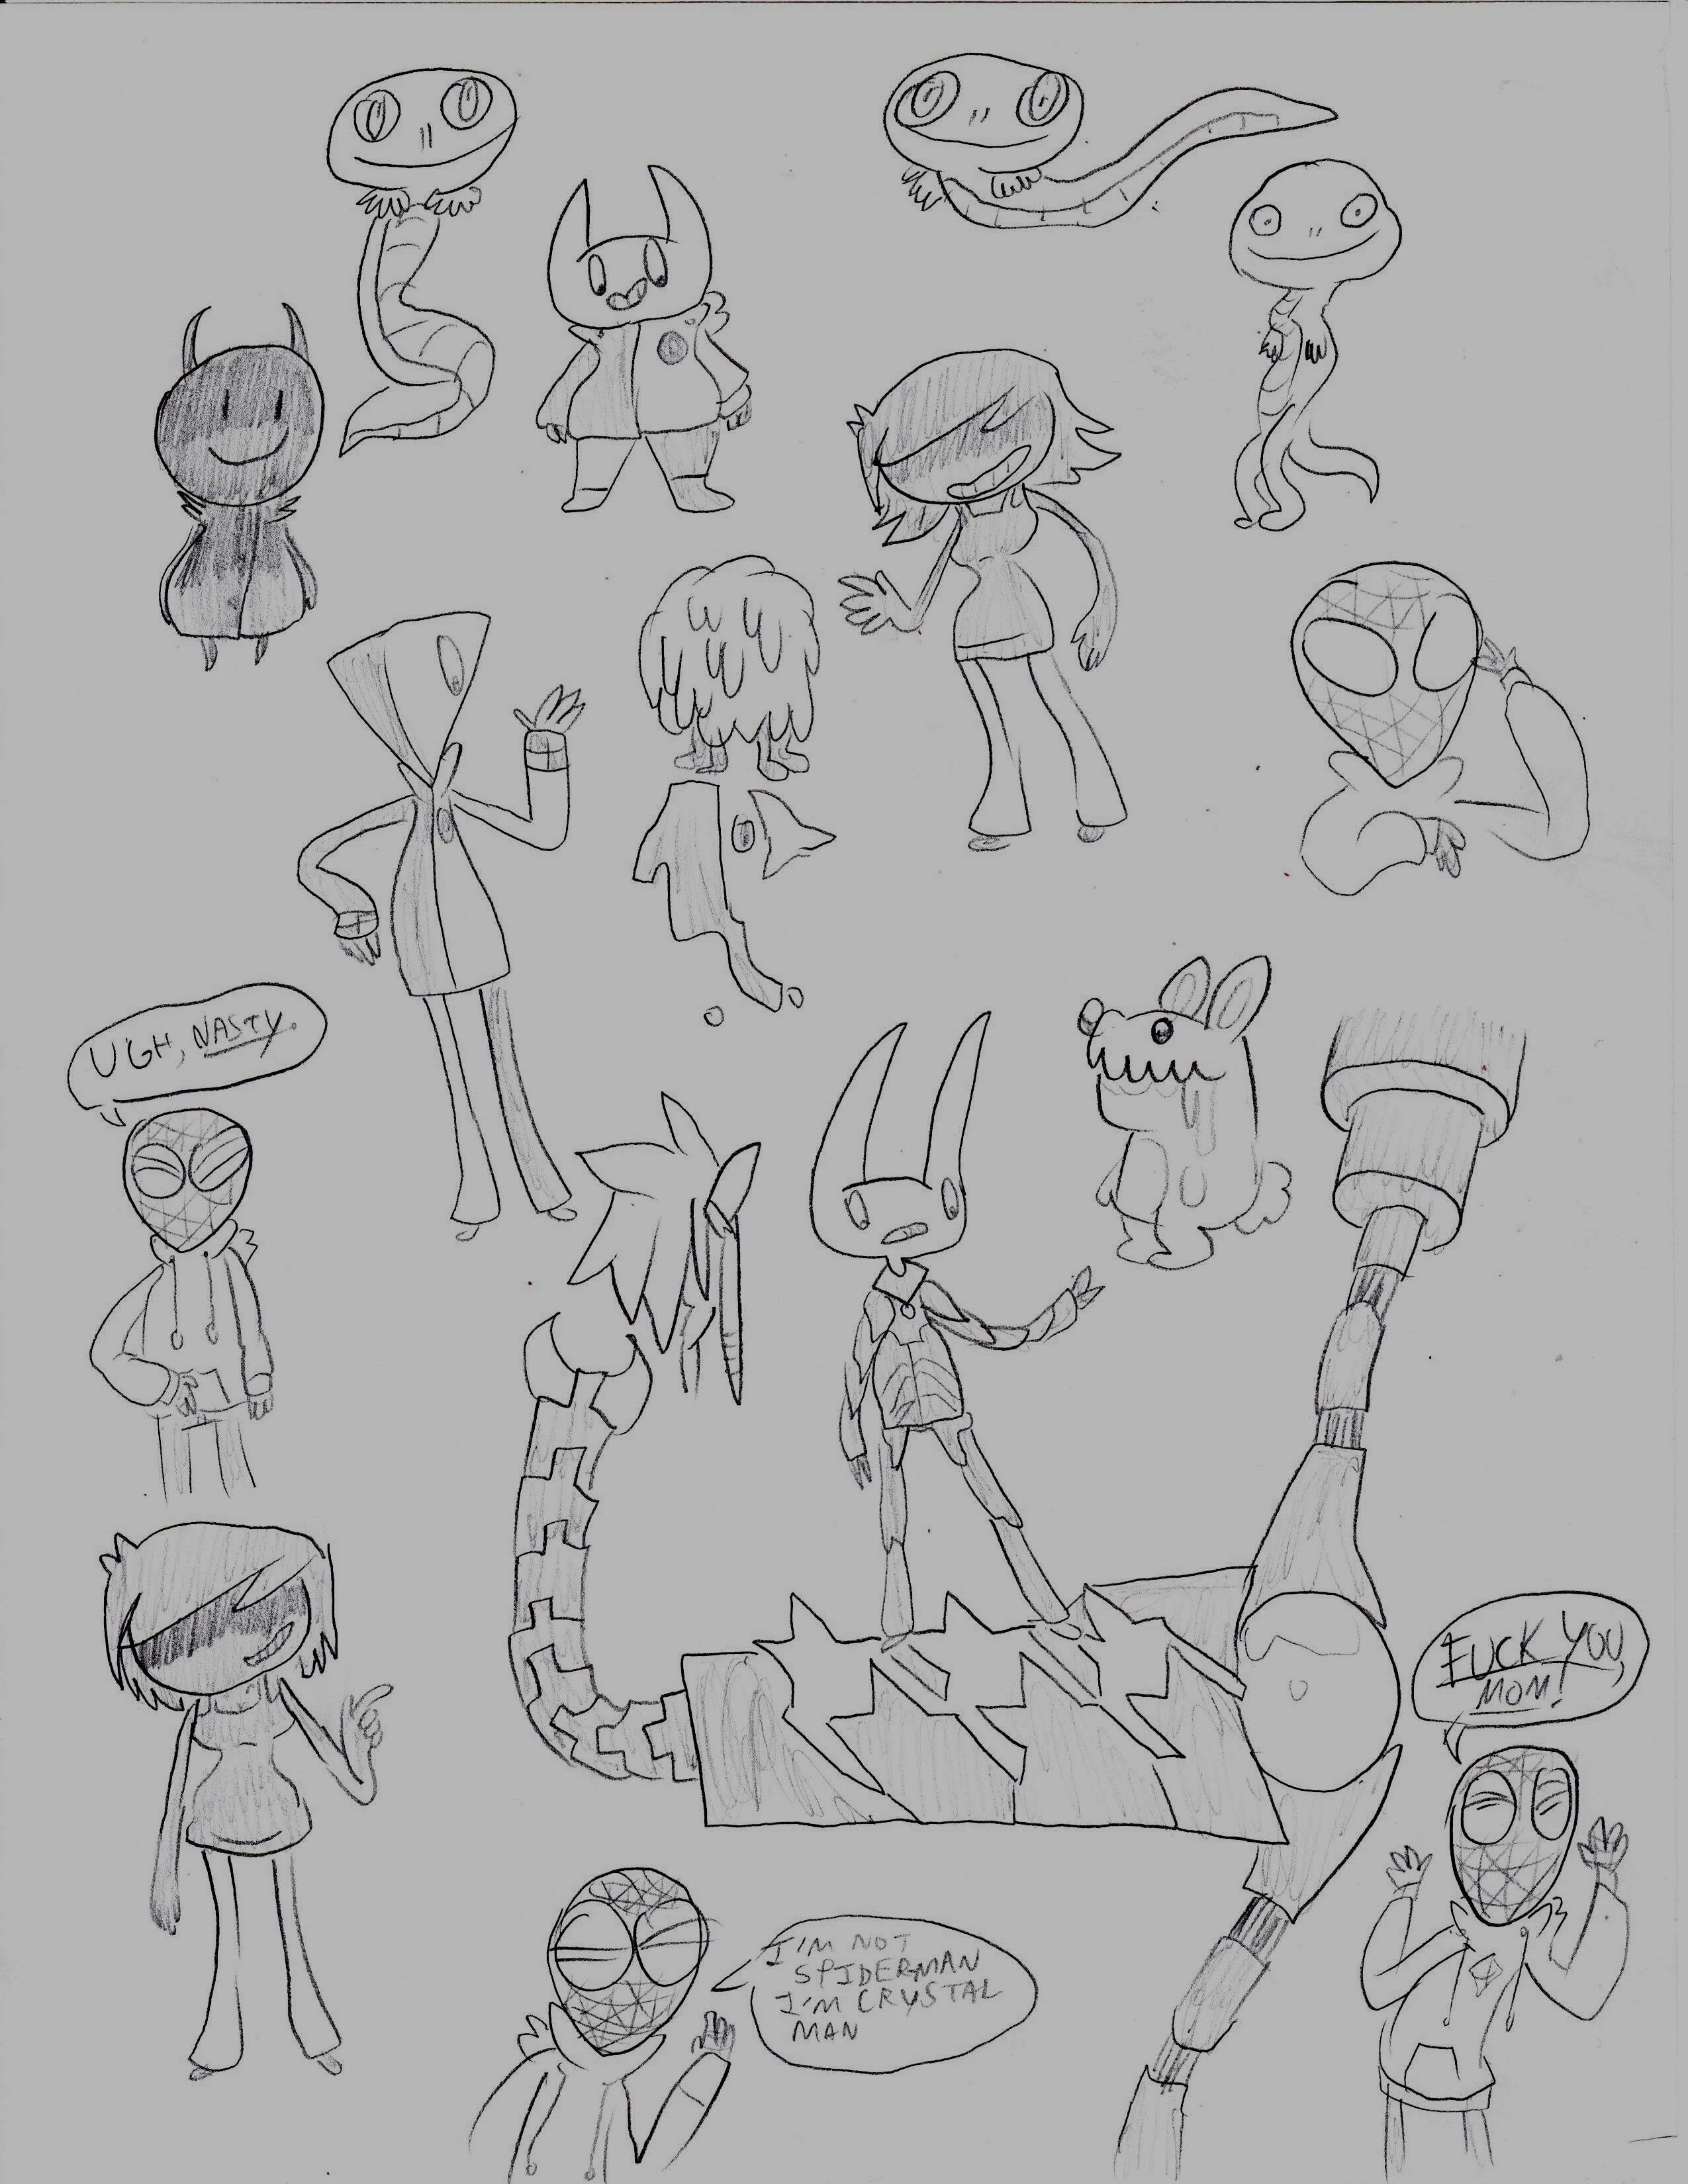 User blog:Exotoro/890th Blog: Here's Some Doodles I Guess